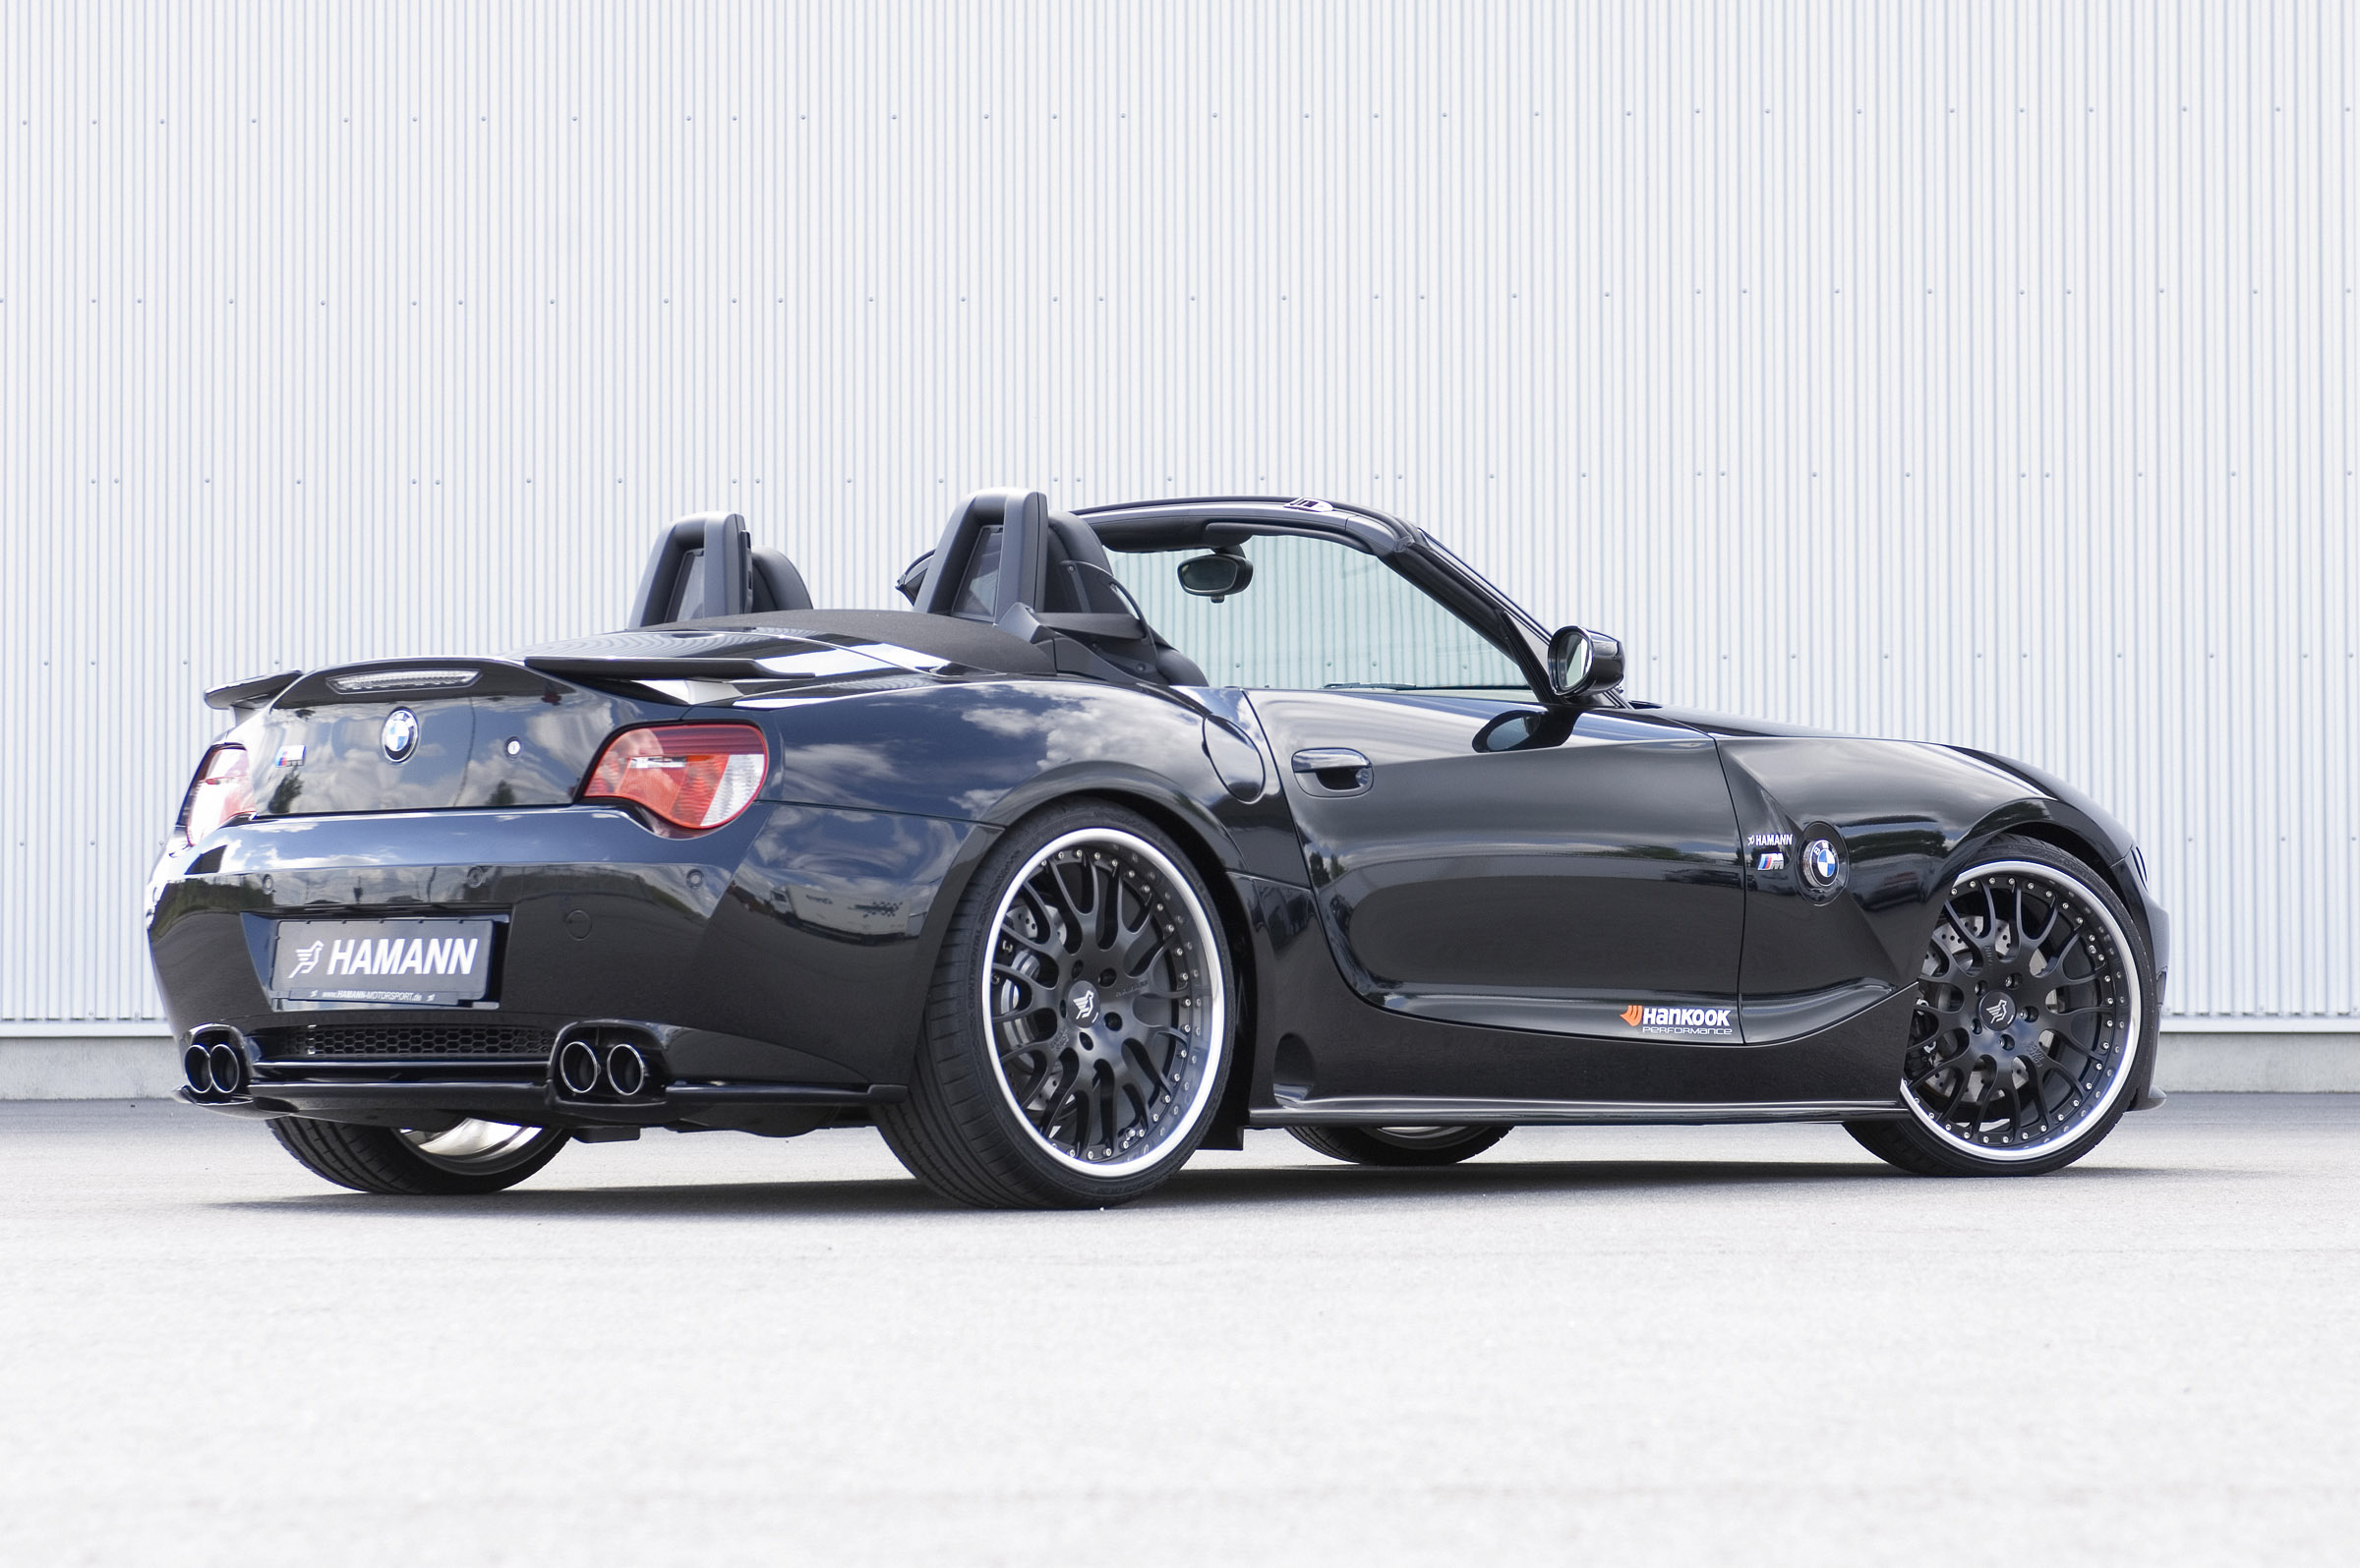 Hamann Bmw Z4 M Roadster Picture 17107 HD Wallpapers Download free images and photos [musssic.tk]